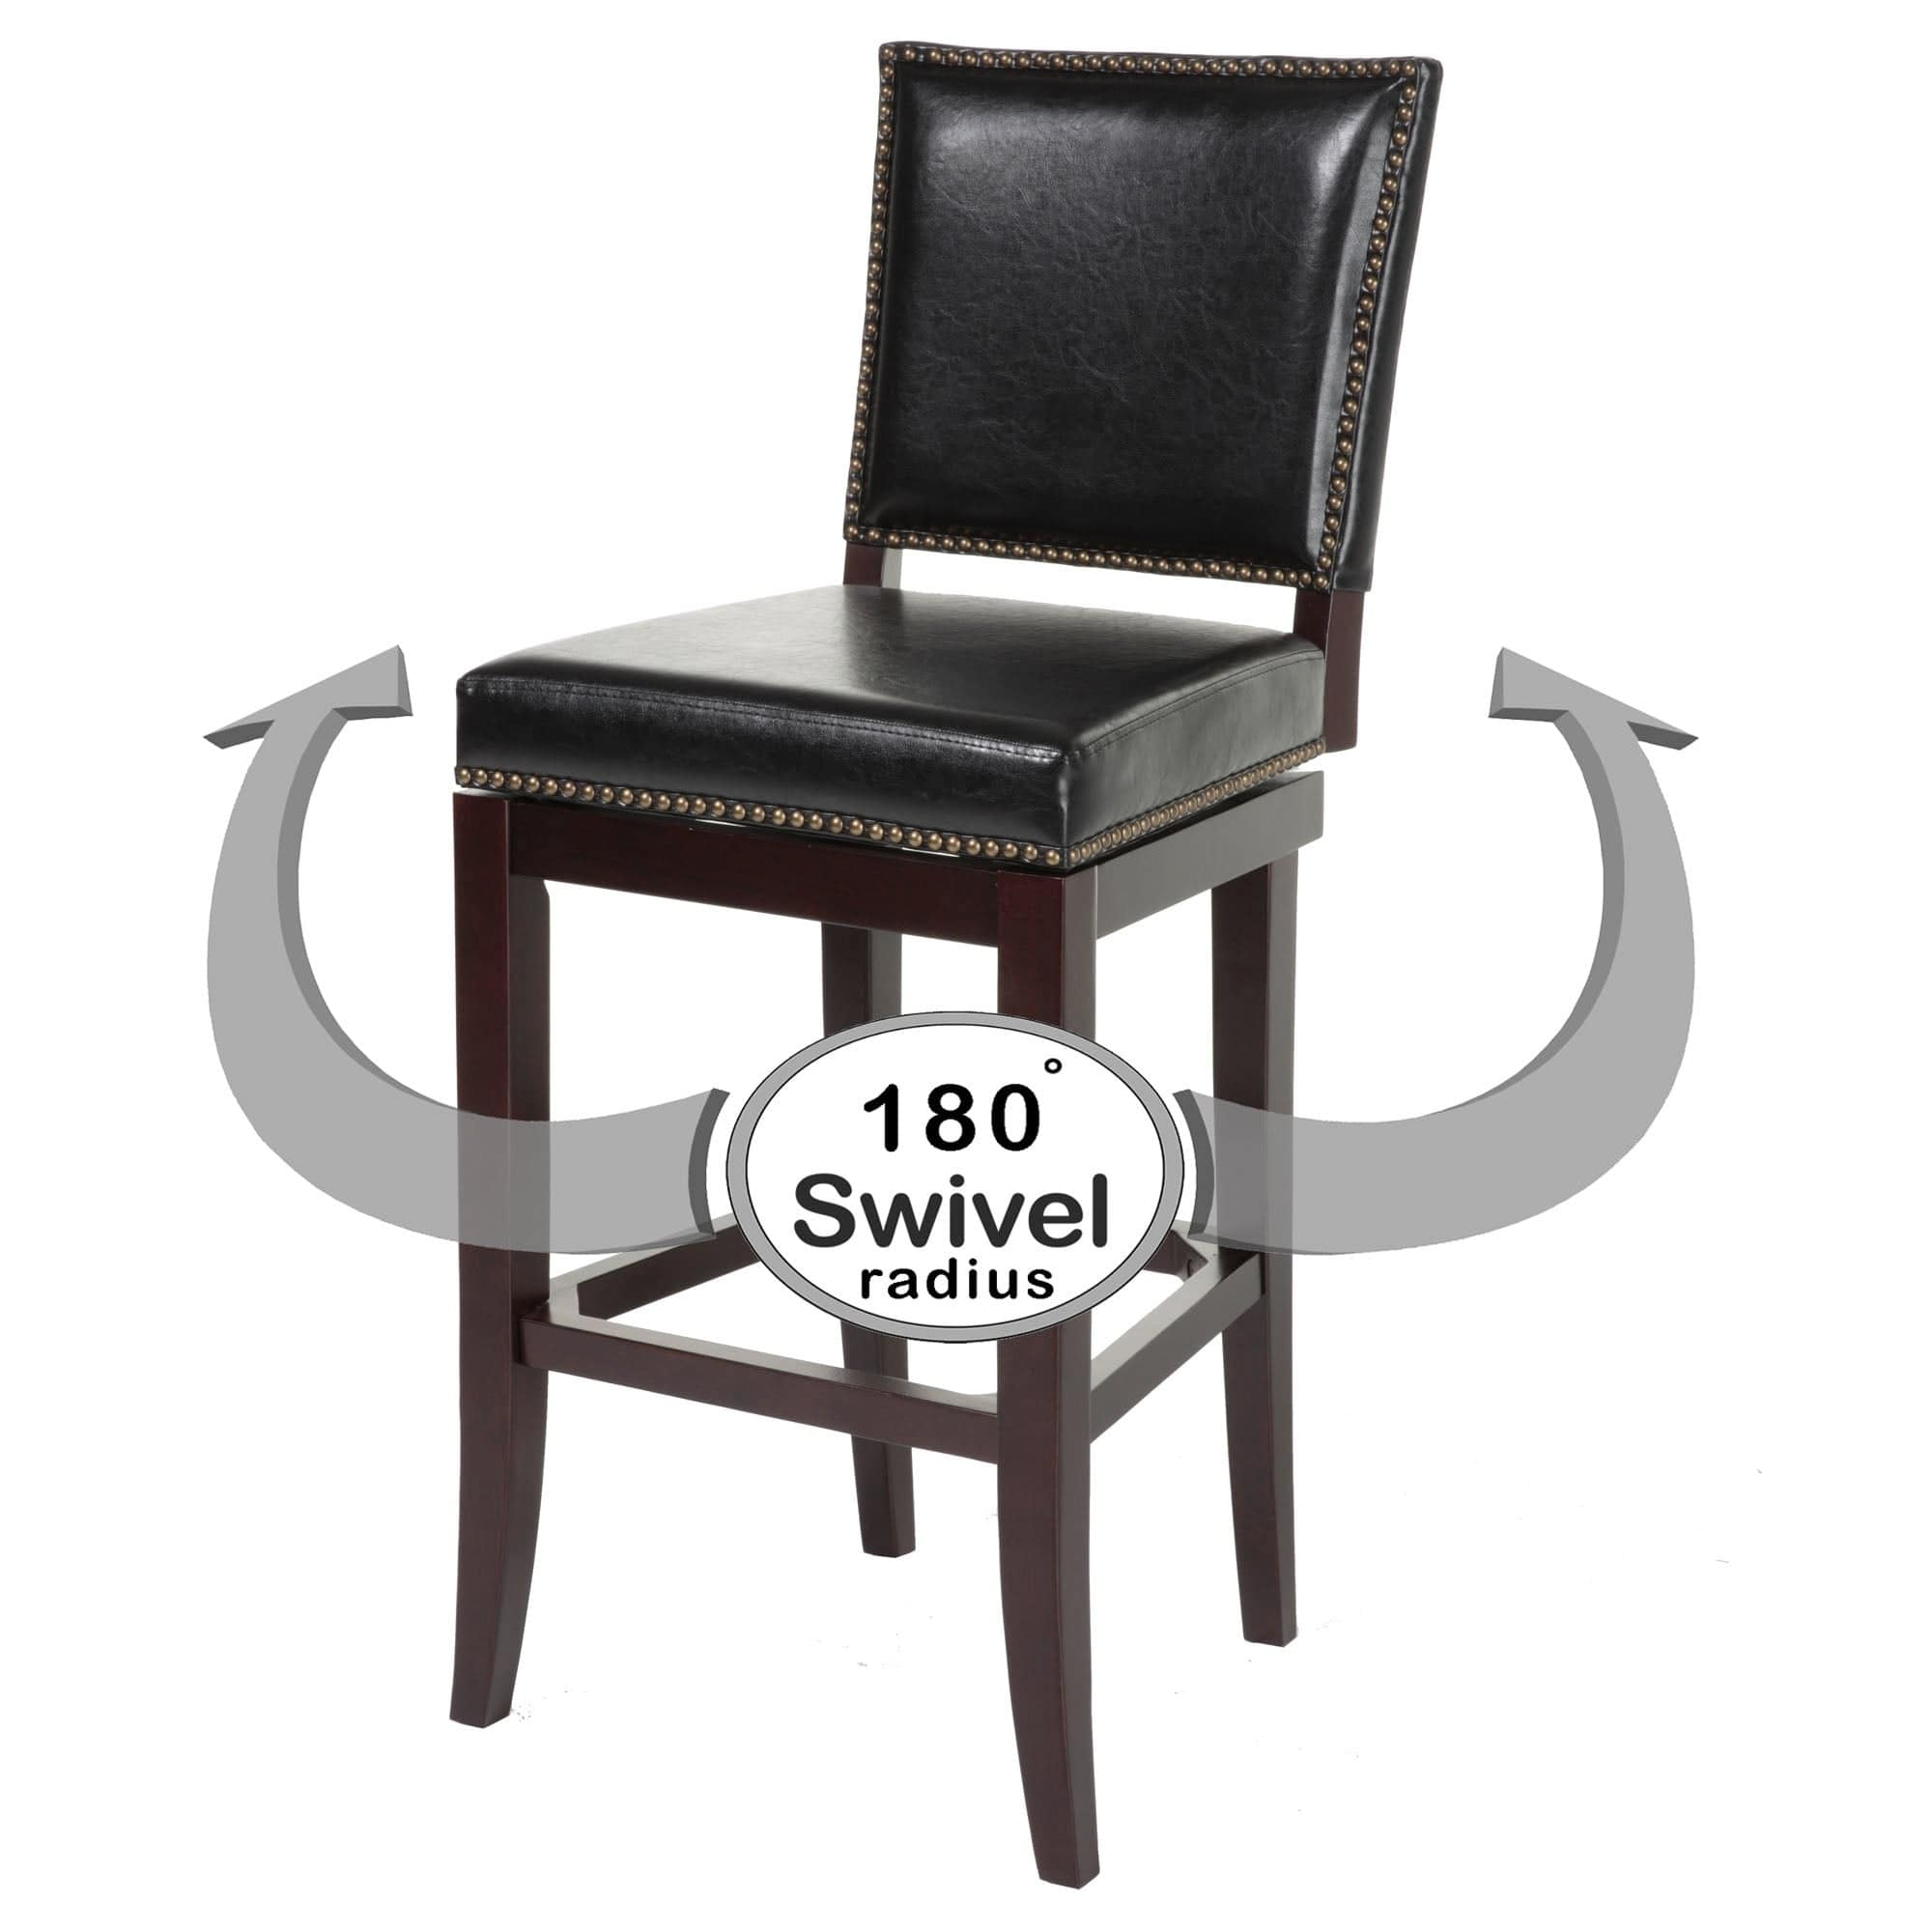 Sensational Sacramento Swivel Seat Counter Stool With Espresso Finished Wood Frame Black Faux Leather Upholstery And Nailhead Trim 26 Inch Seat Height 2 Pack Uwap Interior Chair Design Uwaporg